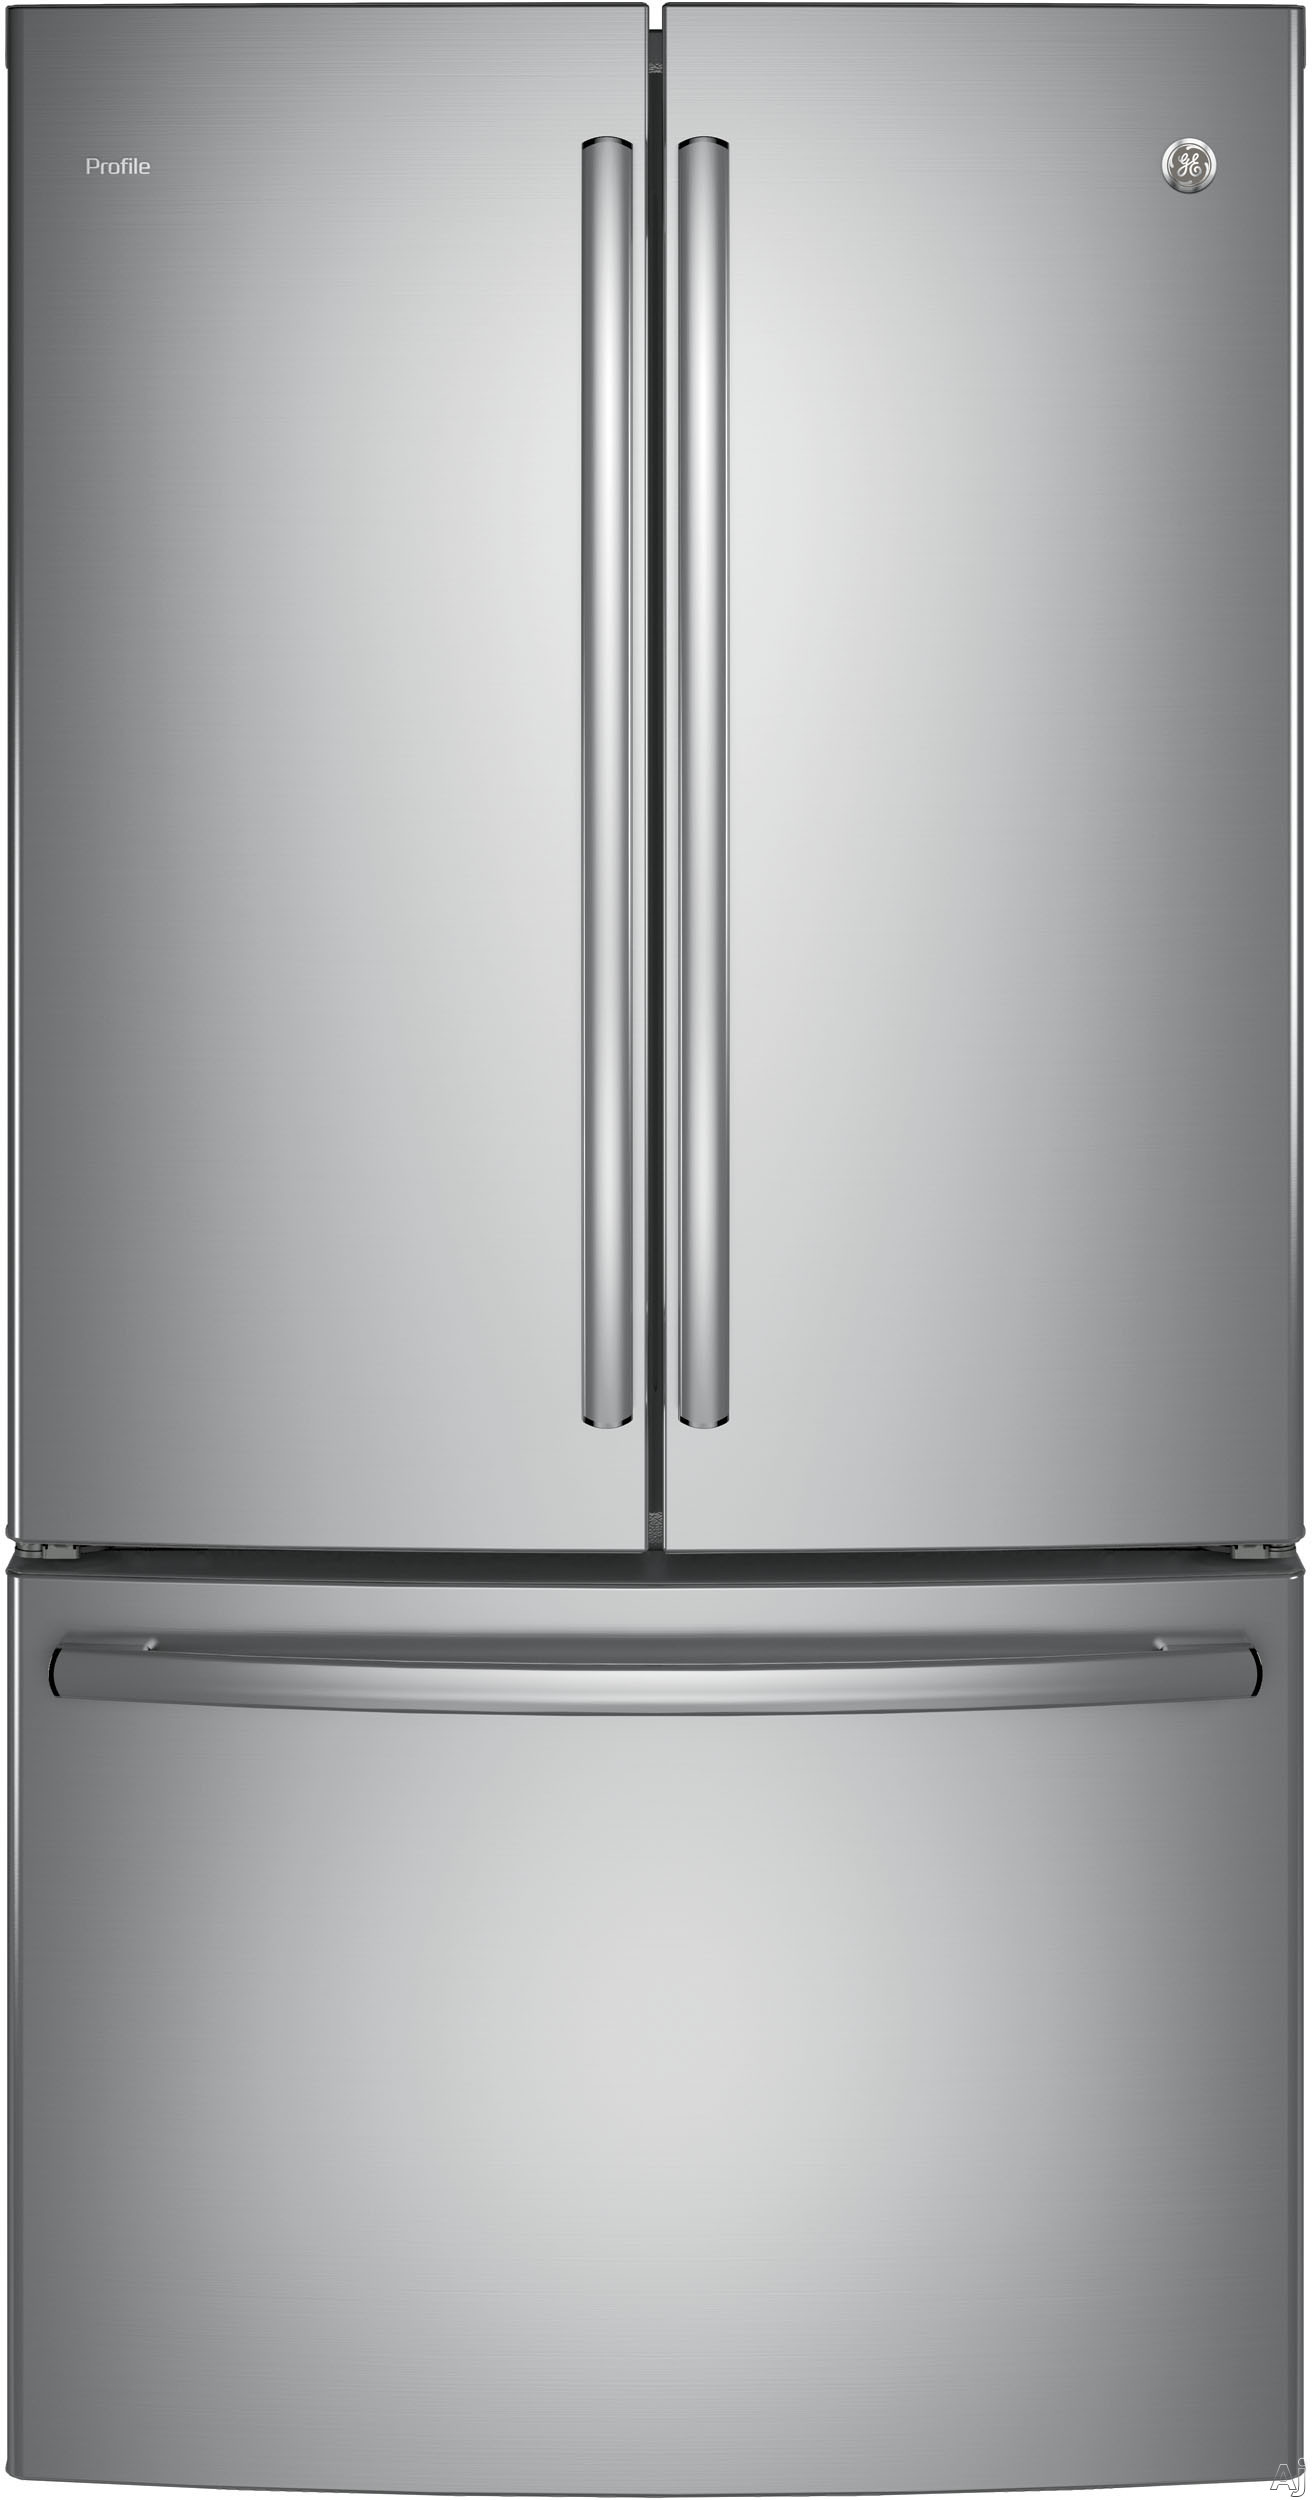 GE Profile PWE23KK 36 Inch Counter Depth French Door Refrigerator with Humidity Controlled Crispers, Temperature Controlled Drawer, Energy Star, 23.1 cu. ft. Capacity, Spill-Proof Glass Shelving, Gallon Door Storage, Ice Maker and Internal Water Dispenser